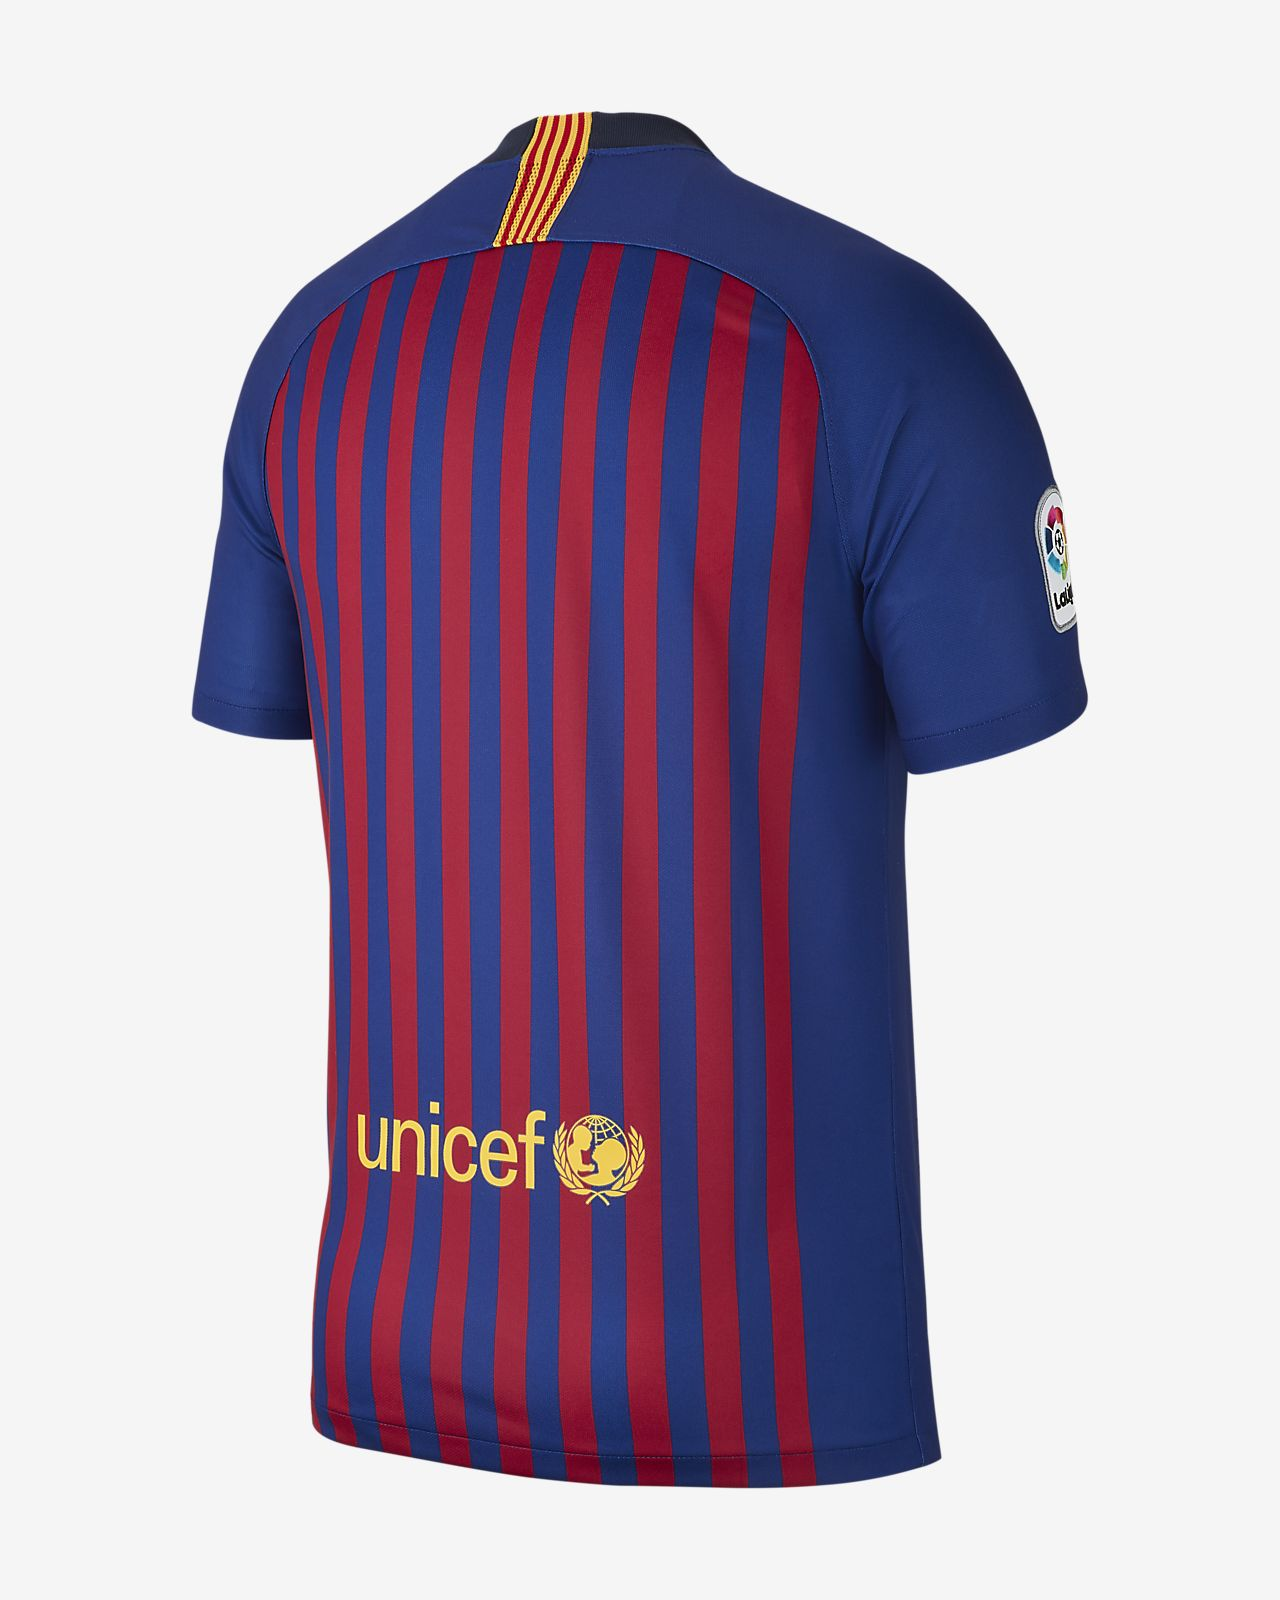 b919d9af267 2018 19 FC Barcelona Stadium Home Men s Football Shirt. Nike.com CA